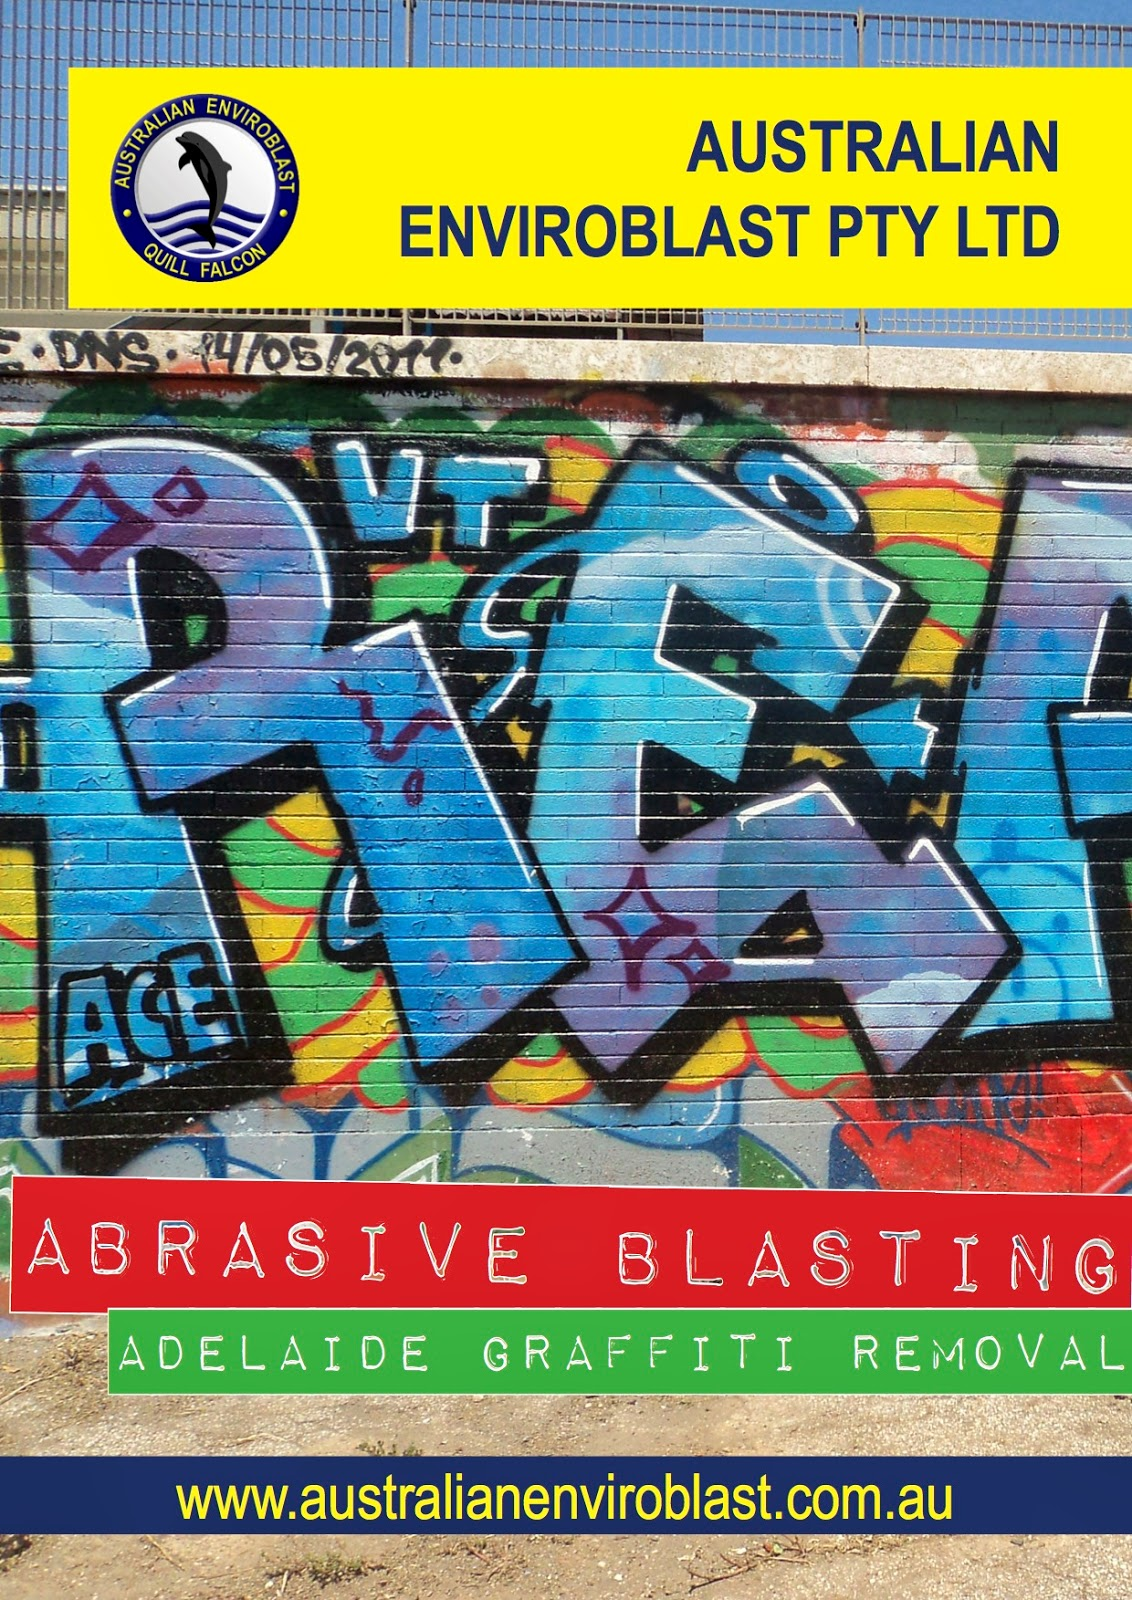 At Australian Enviroblast, we specialise in the restoration of heritage properties and so are equipped and experienced to be able to remove graffiti from soft stone and the most delicate buildings and structures.